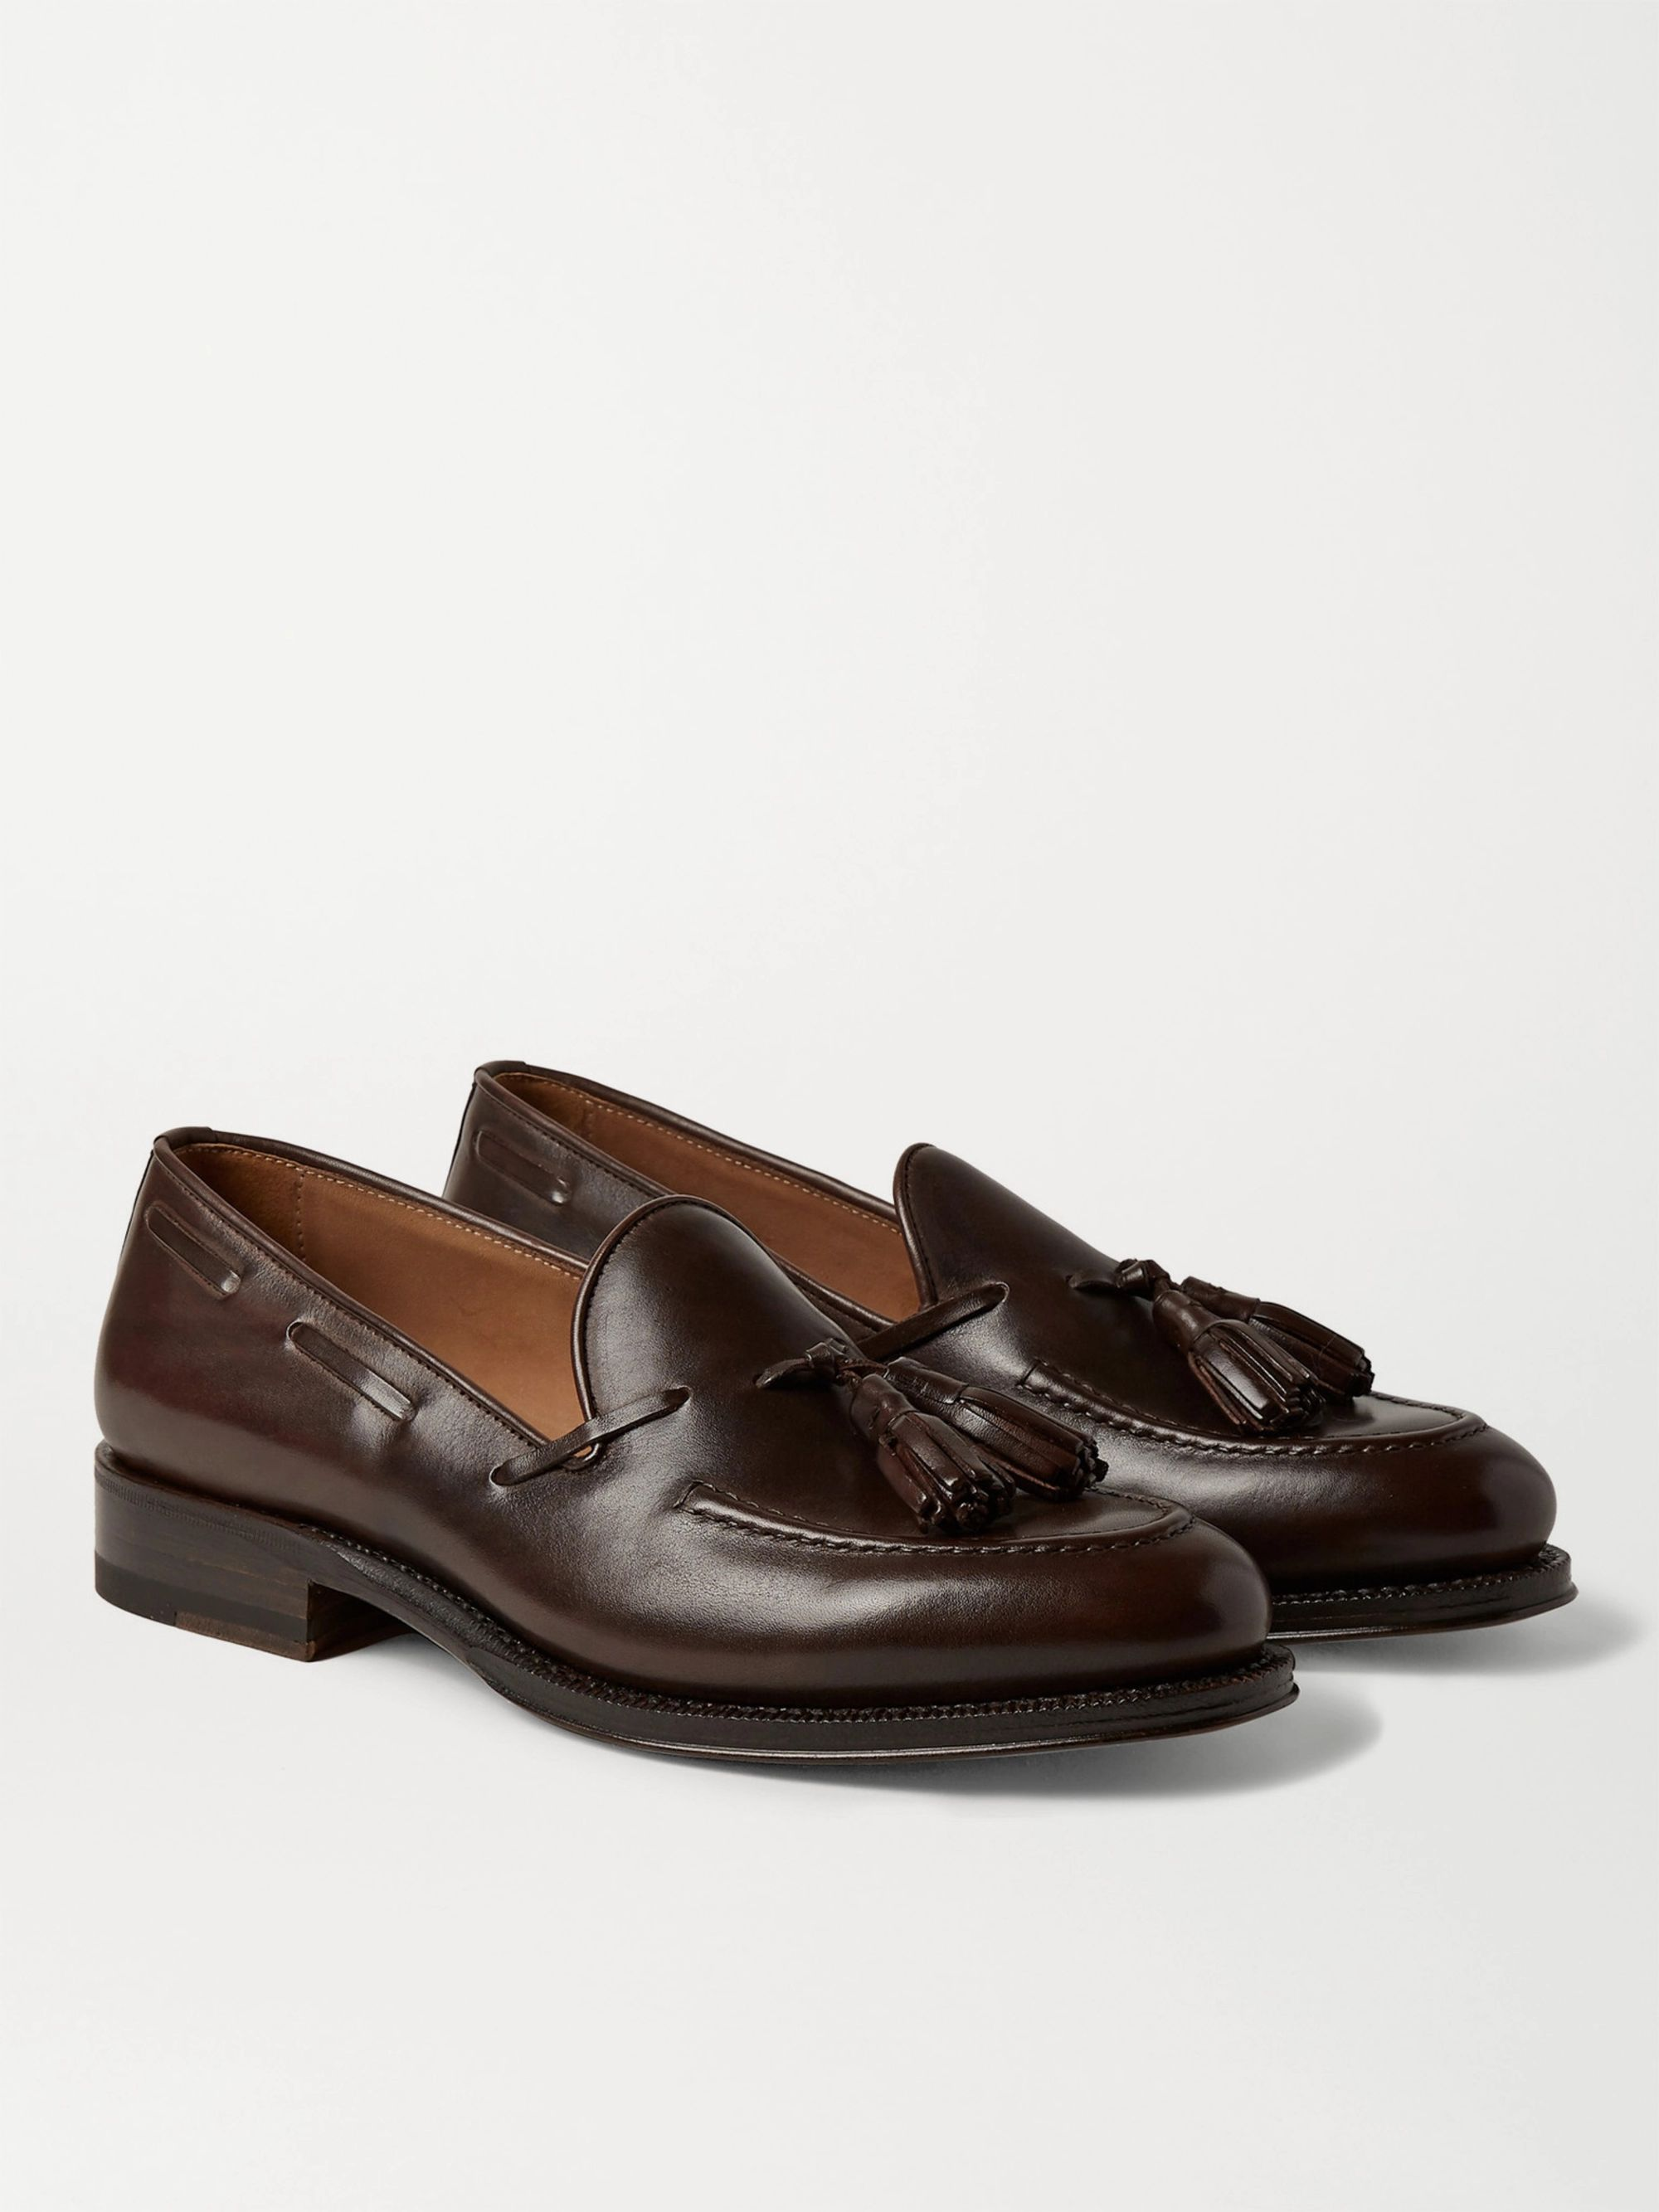 Sid Mashburn Leather Tasselled Loafers